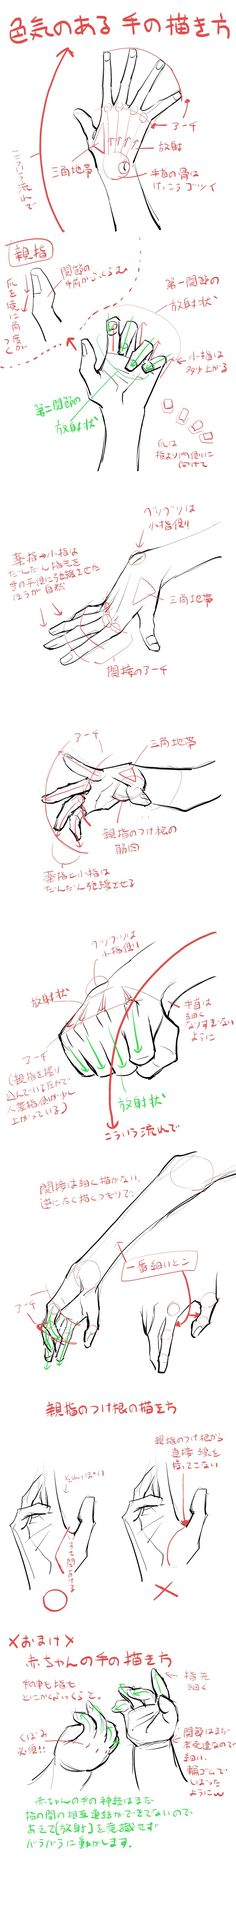 drawing hands. I don't read japanese, but the illustration is amazing.. Please also visit www.JustForYouPropheticArt.com for colorful, inspirational art and stories. Thank you so much, blessings!